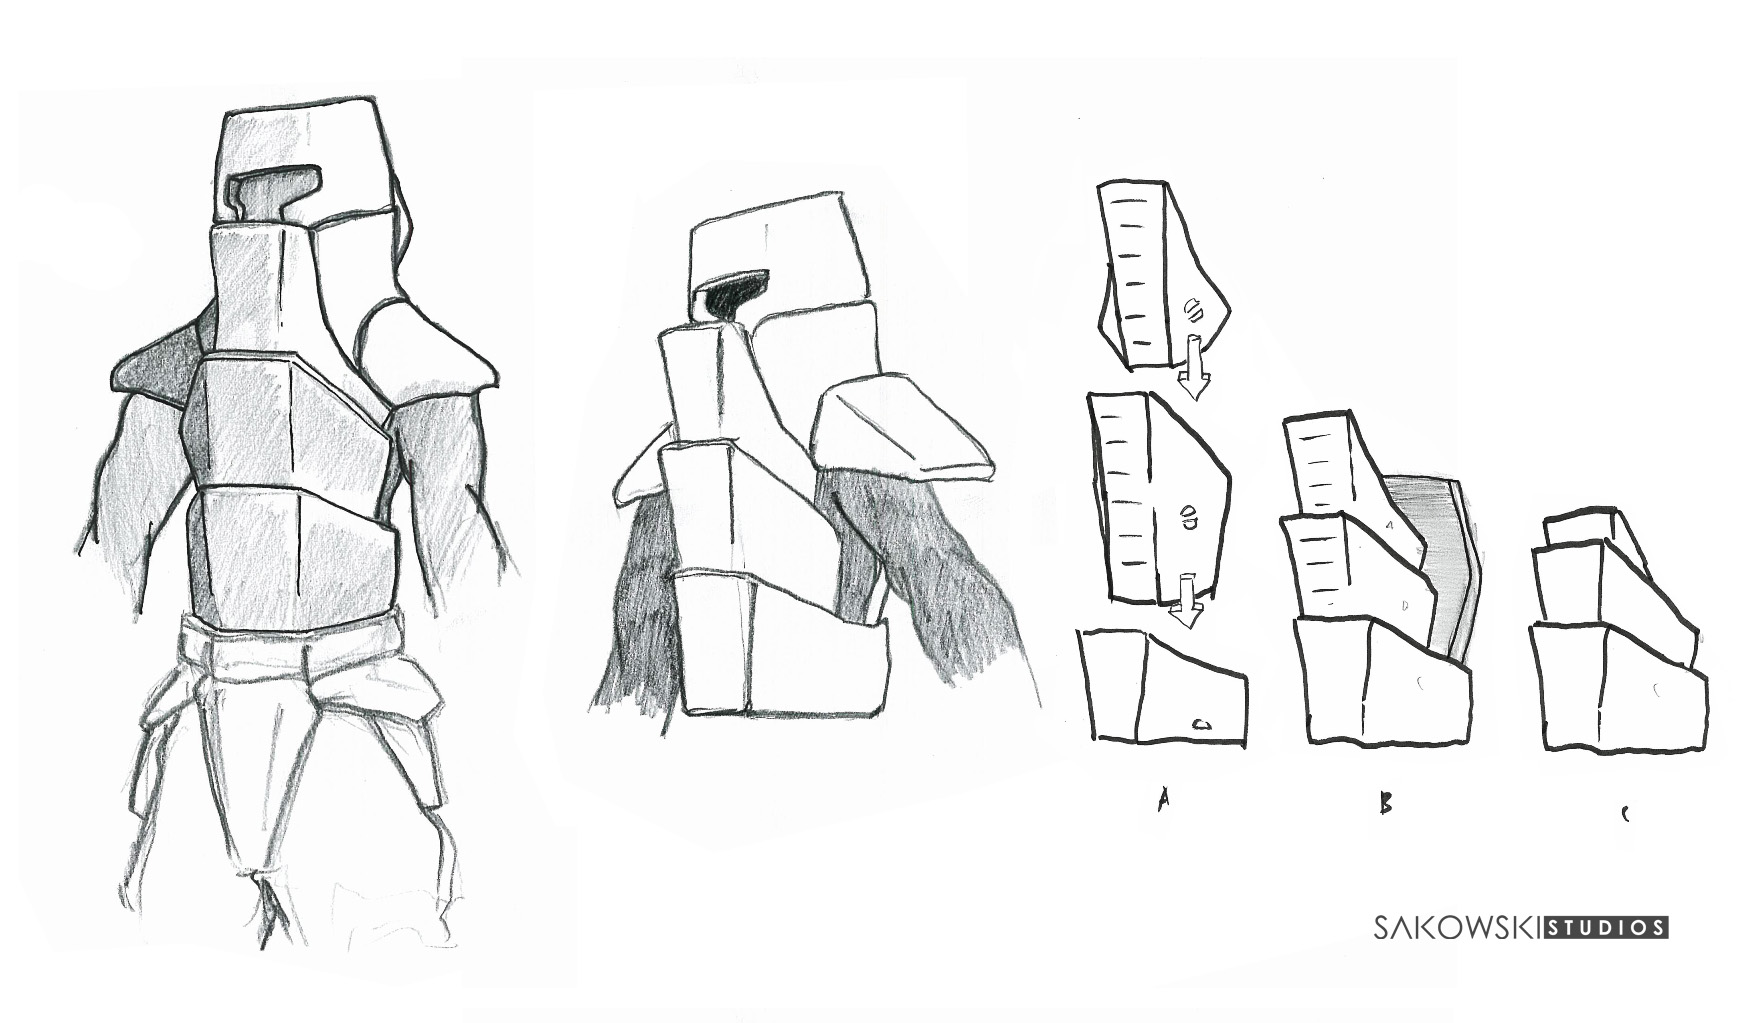 "These designs I originally concepted around 2007 - 2008 they are, and will continue to be work in progress. I wanted to try something different from traditional armour that uses plates interlacing downwards. The idea is a reverse plate exo-shell, the plates act as a electromagnetic spring, they can compress omni-directionally as you move offering maximum protection to vital organs... against you know some kinda future hellish ""Tank Animal"""